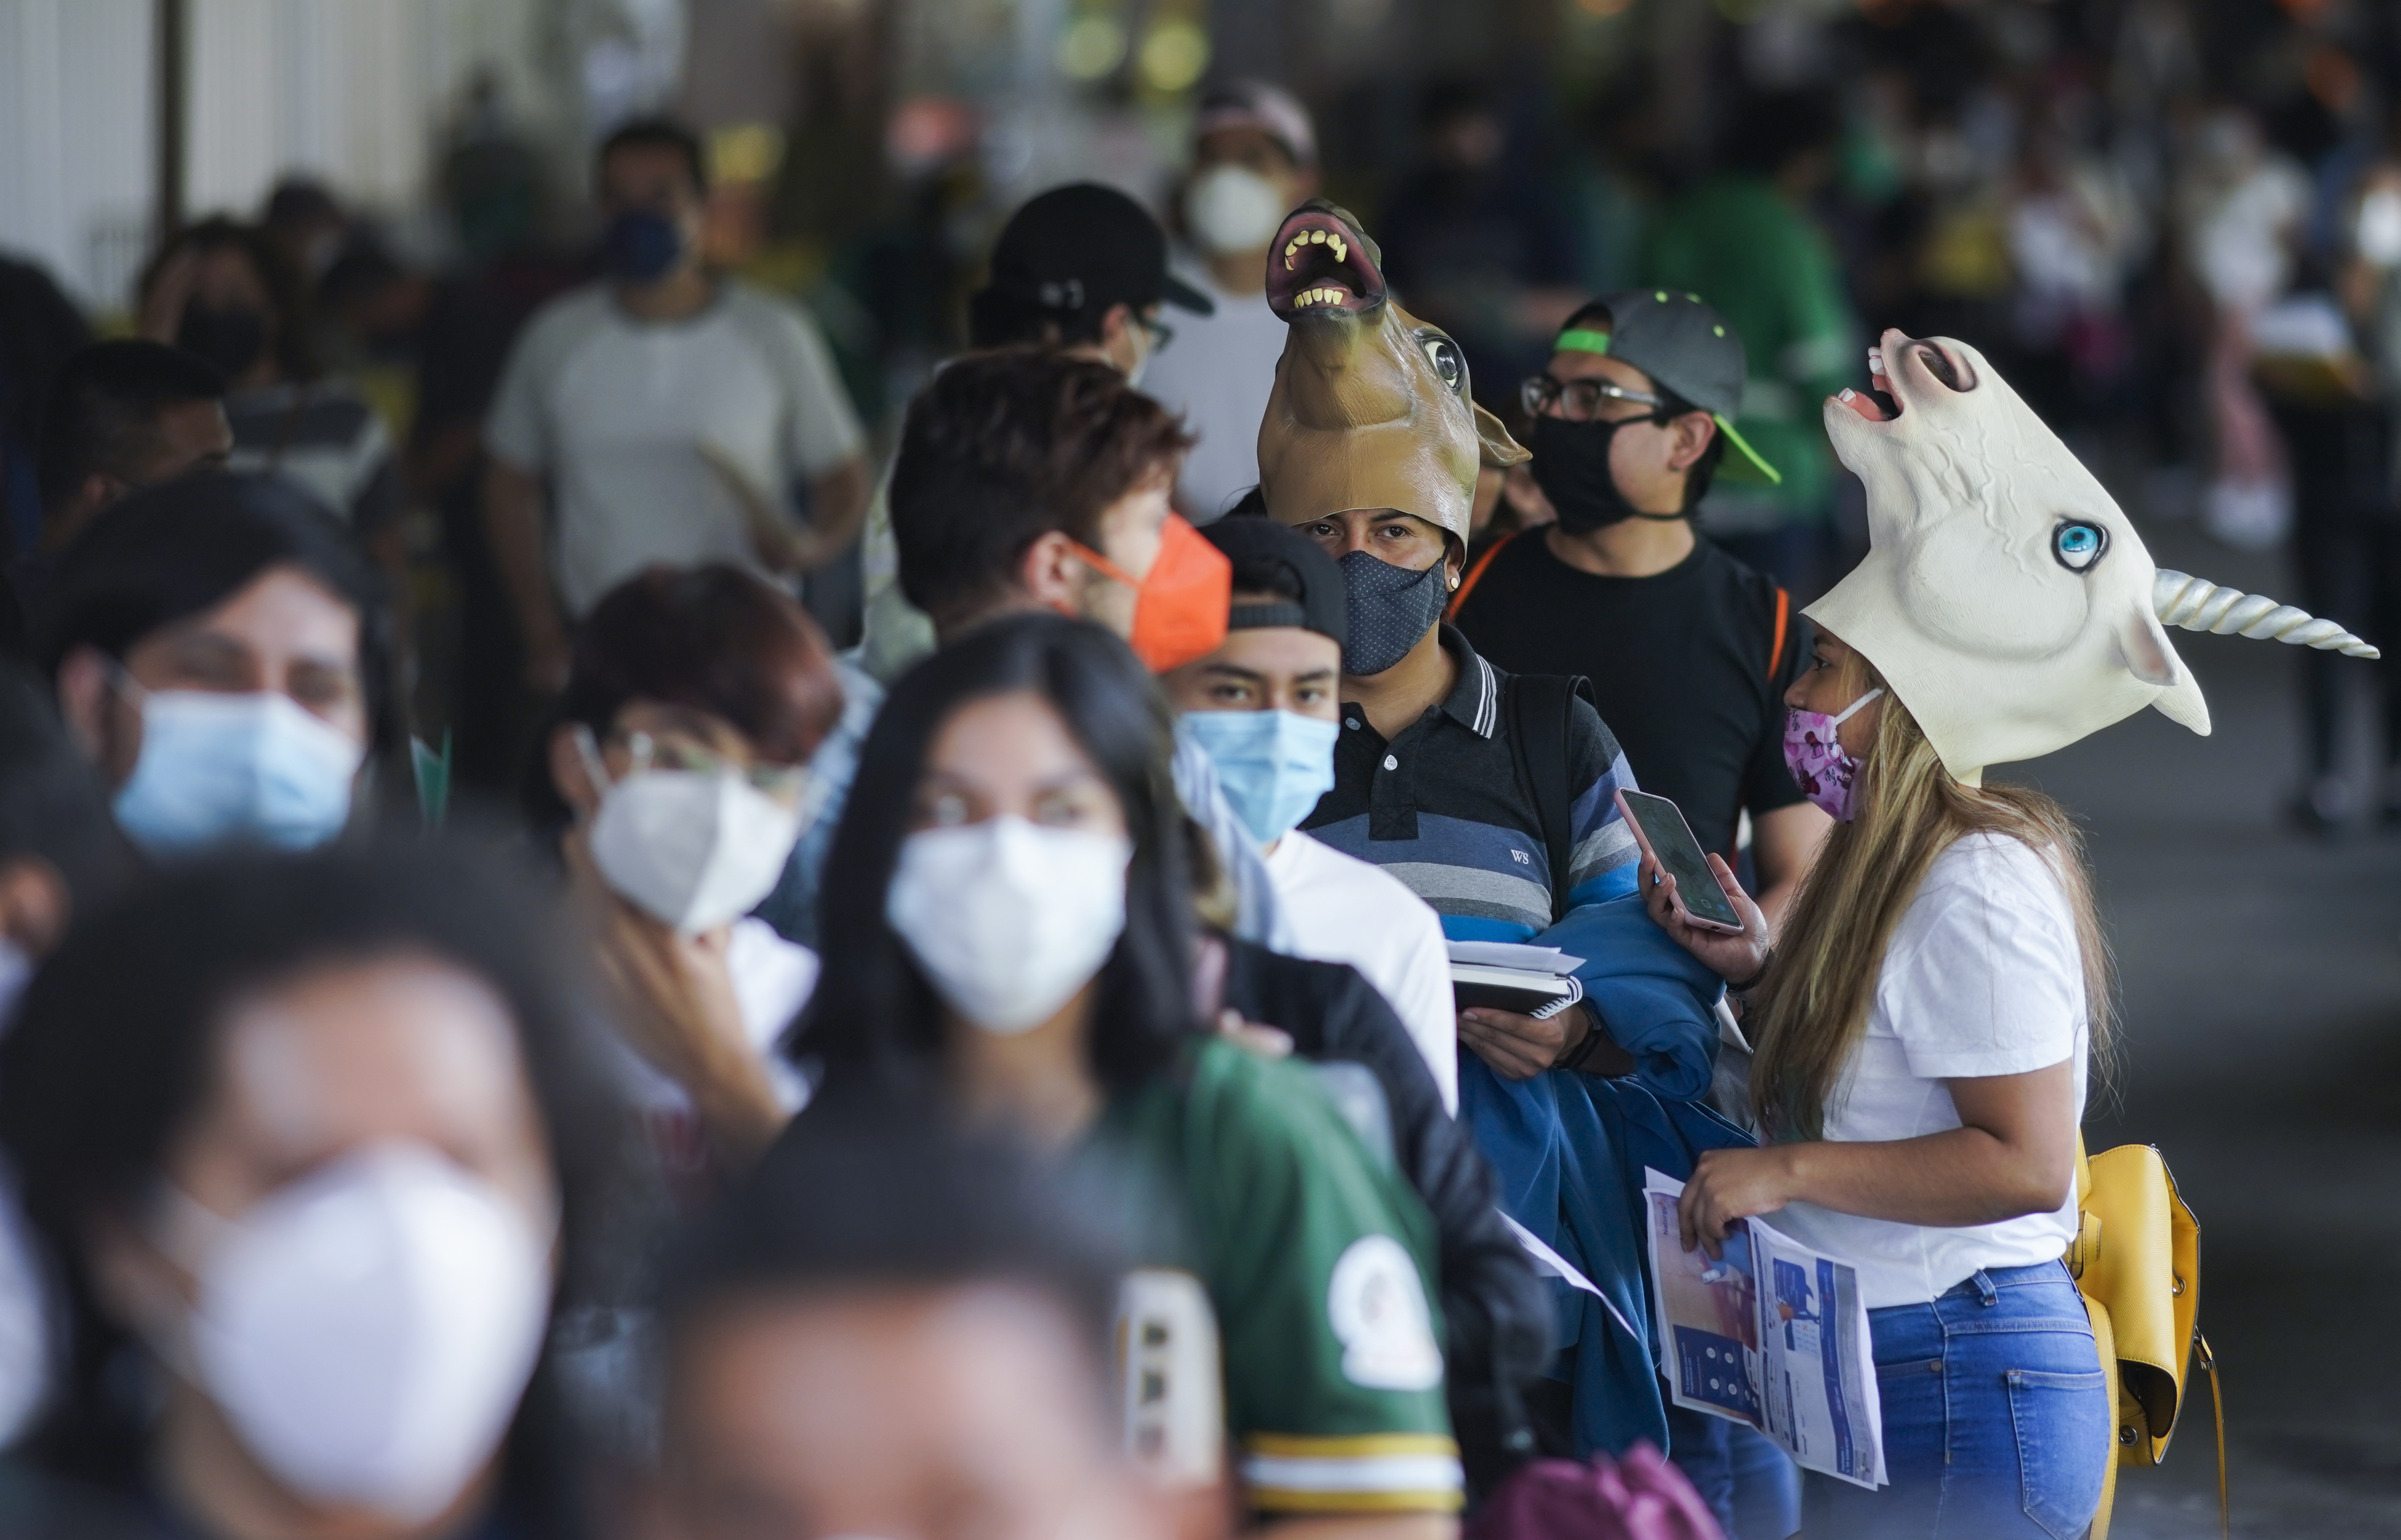 Young people, some wearing masks, wait for COVID-19 shots during a vaccination drive for people between the ages of 18 and 29 in Mexico City. The capital's south side borough of Xochimilco is encouraging young residents to dress up in costumes and compete for prizes if they come for their first COVID-19 vaccine dose.